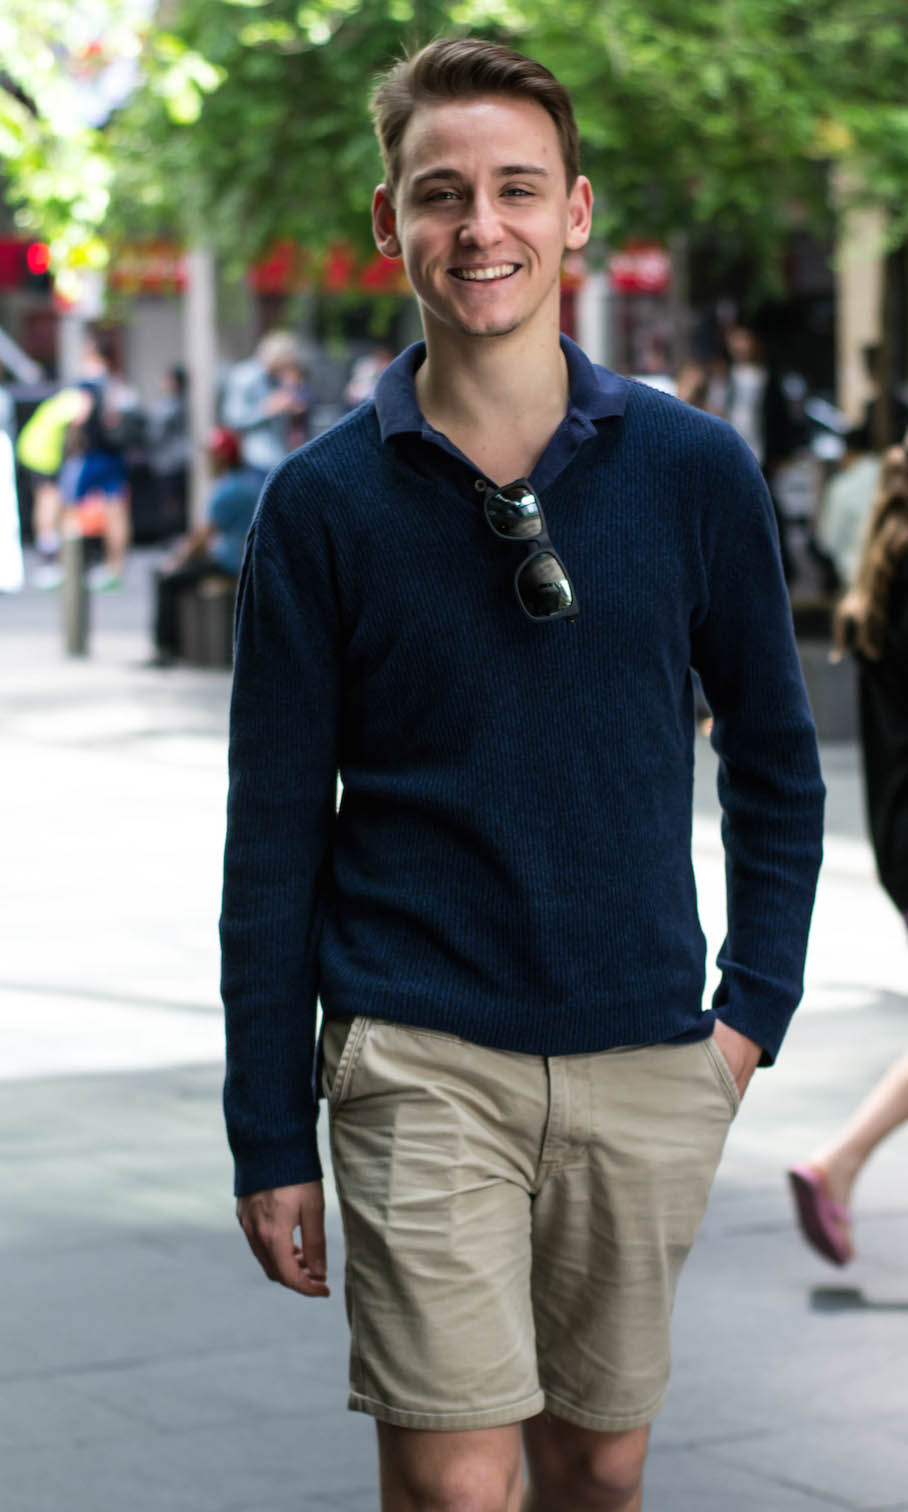 """NSW: William Matterson, Engineering/Business Student, Pitt St. """"I got roped into this because of my girlfriend."""" Photo: Alice Sciberras"""